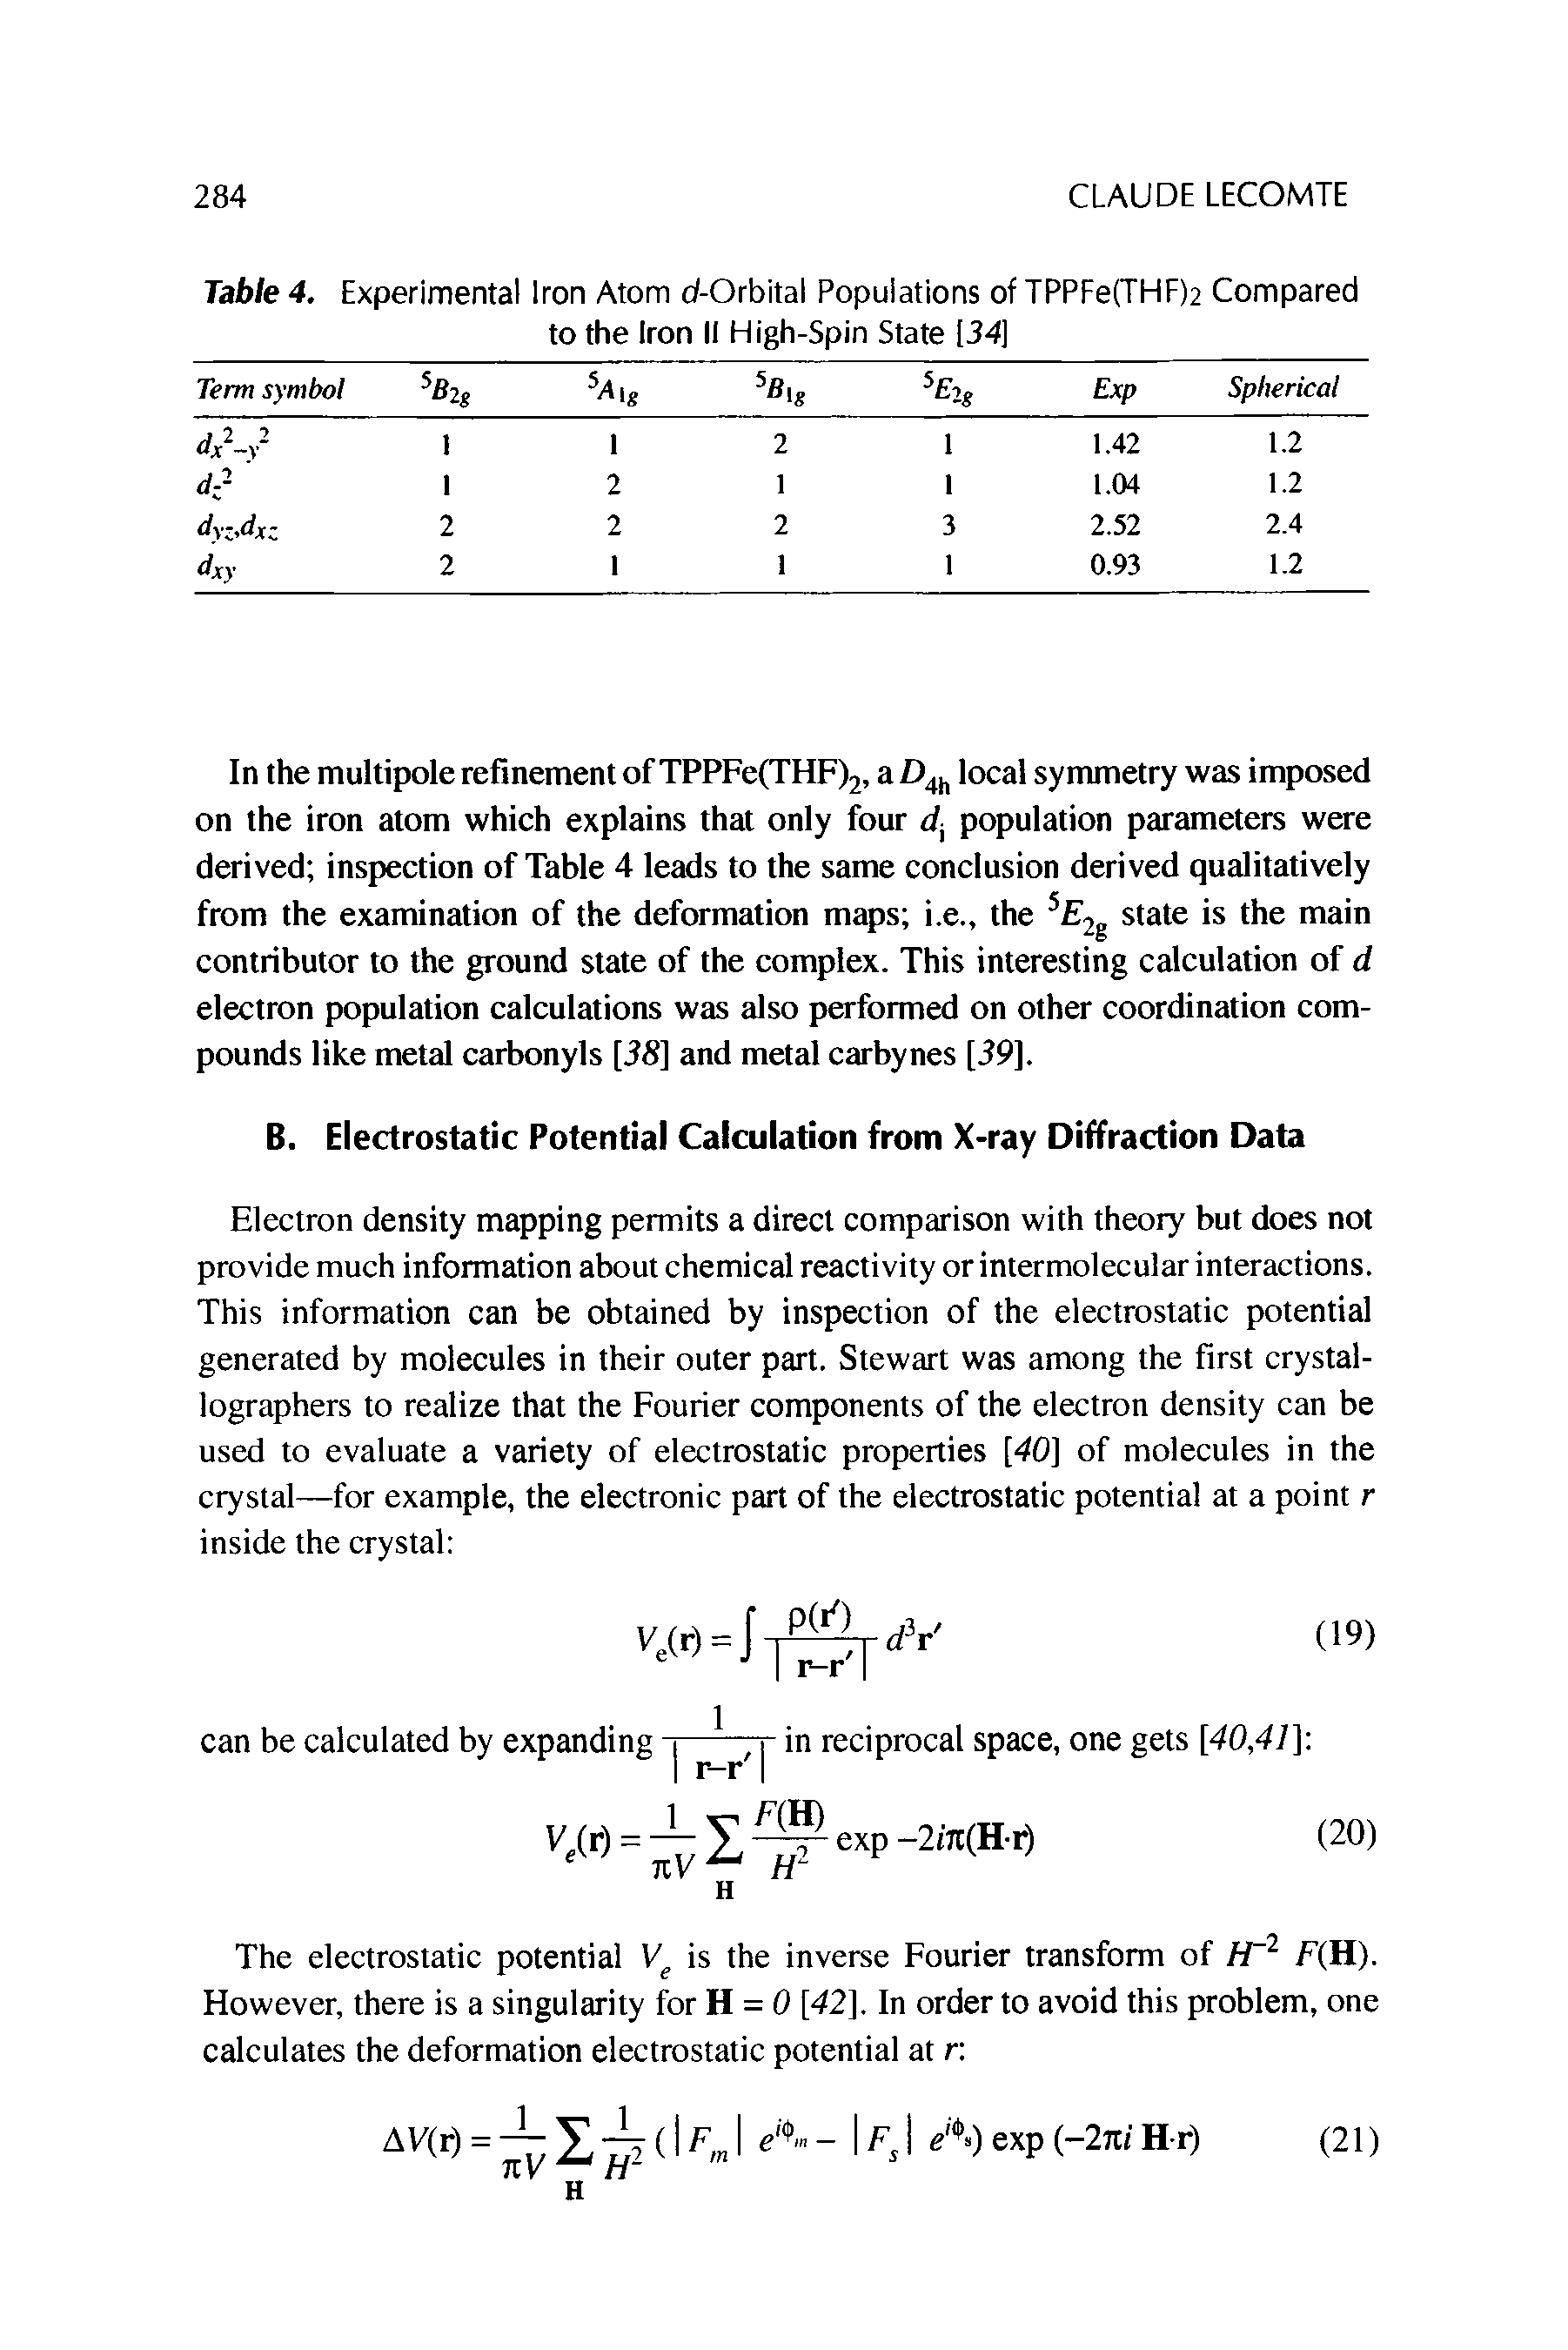 "Table 4. Experimental <a href=""/info/iron_atom"">Iron Atom</a> d-Orbital Populations of TPPFe(THF)2 Compared to the Iron II <a href=""/info/high_spins"">High-Spin</a> State [34]"